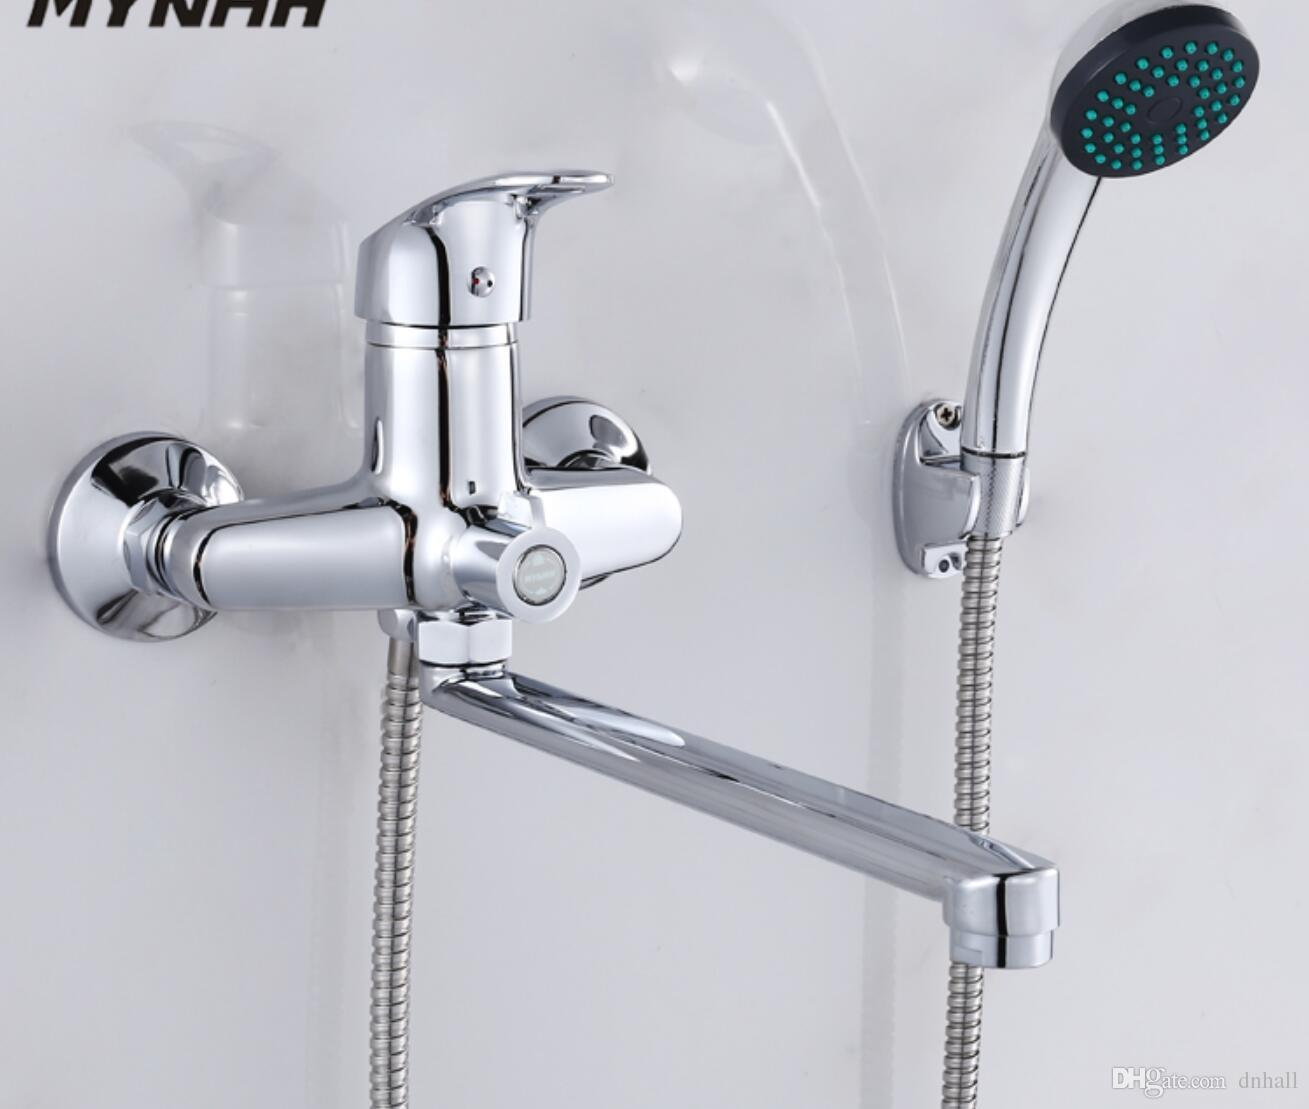 powerful edition engine second bath faucets bathtub wide provides options nickel coverage or advanced chic detailing spray drenching shower bathroom three intense brushed faucet geometric and massage